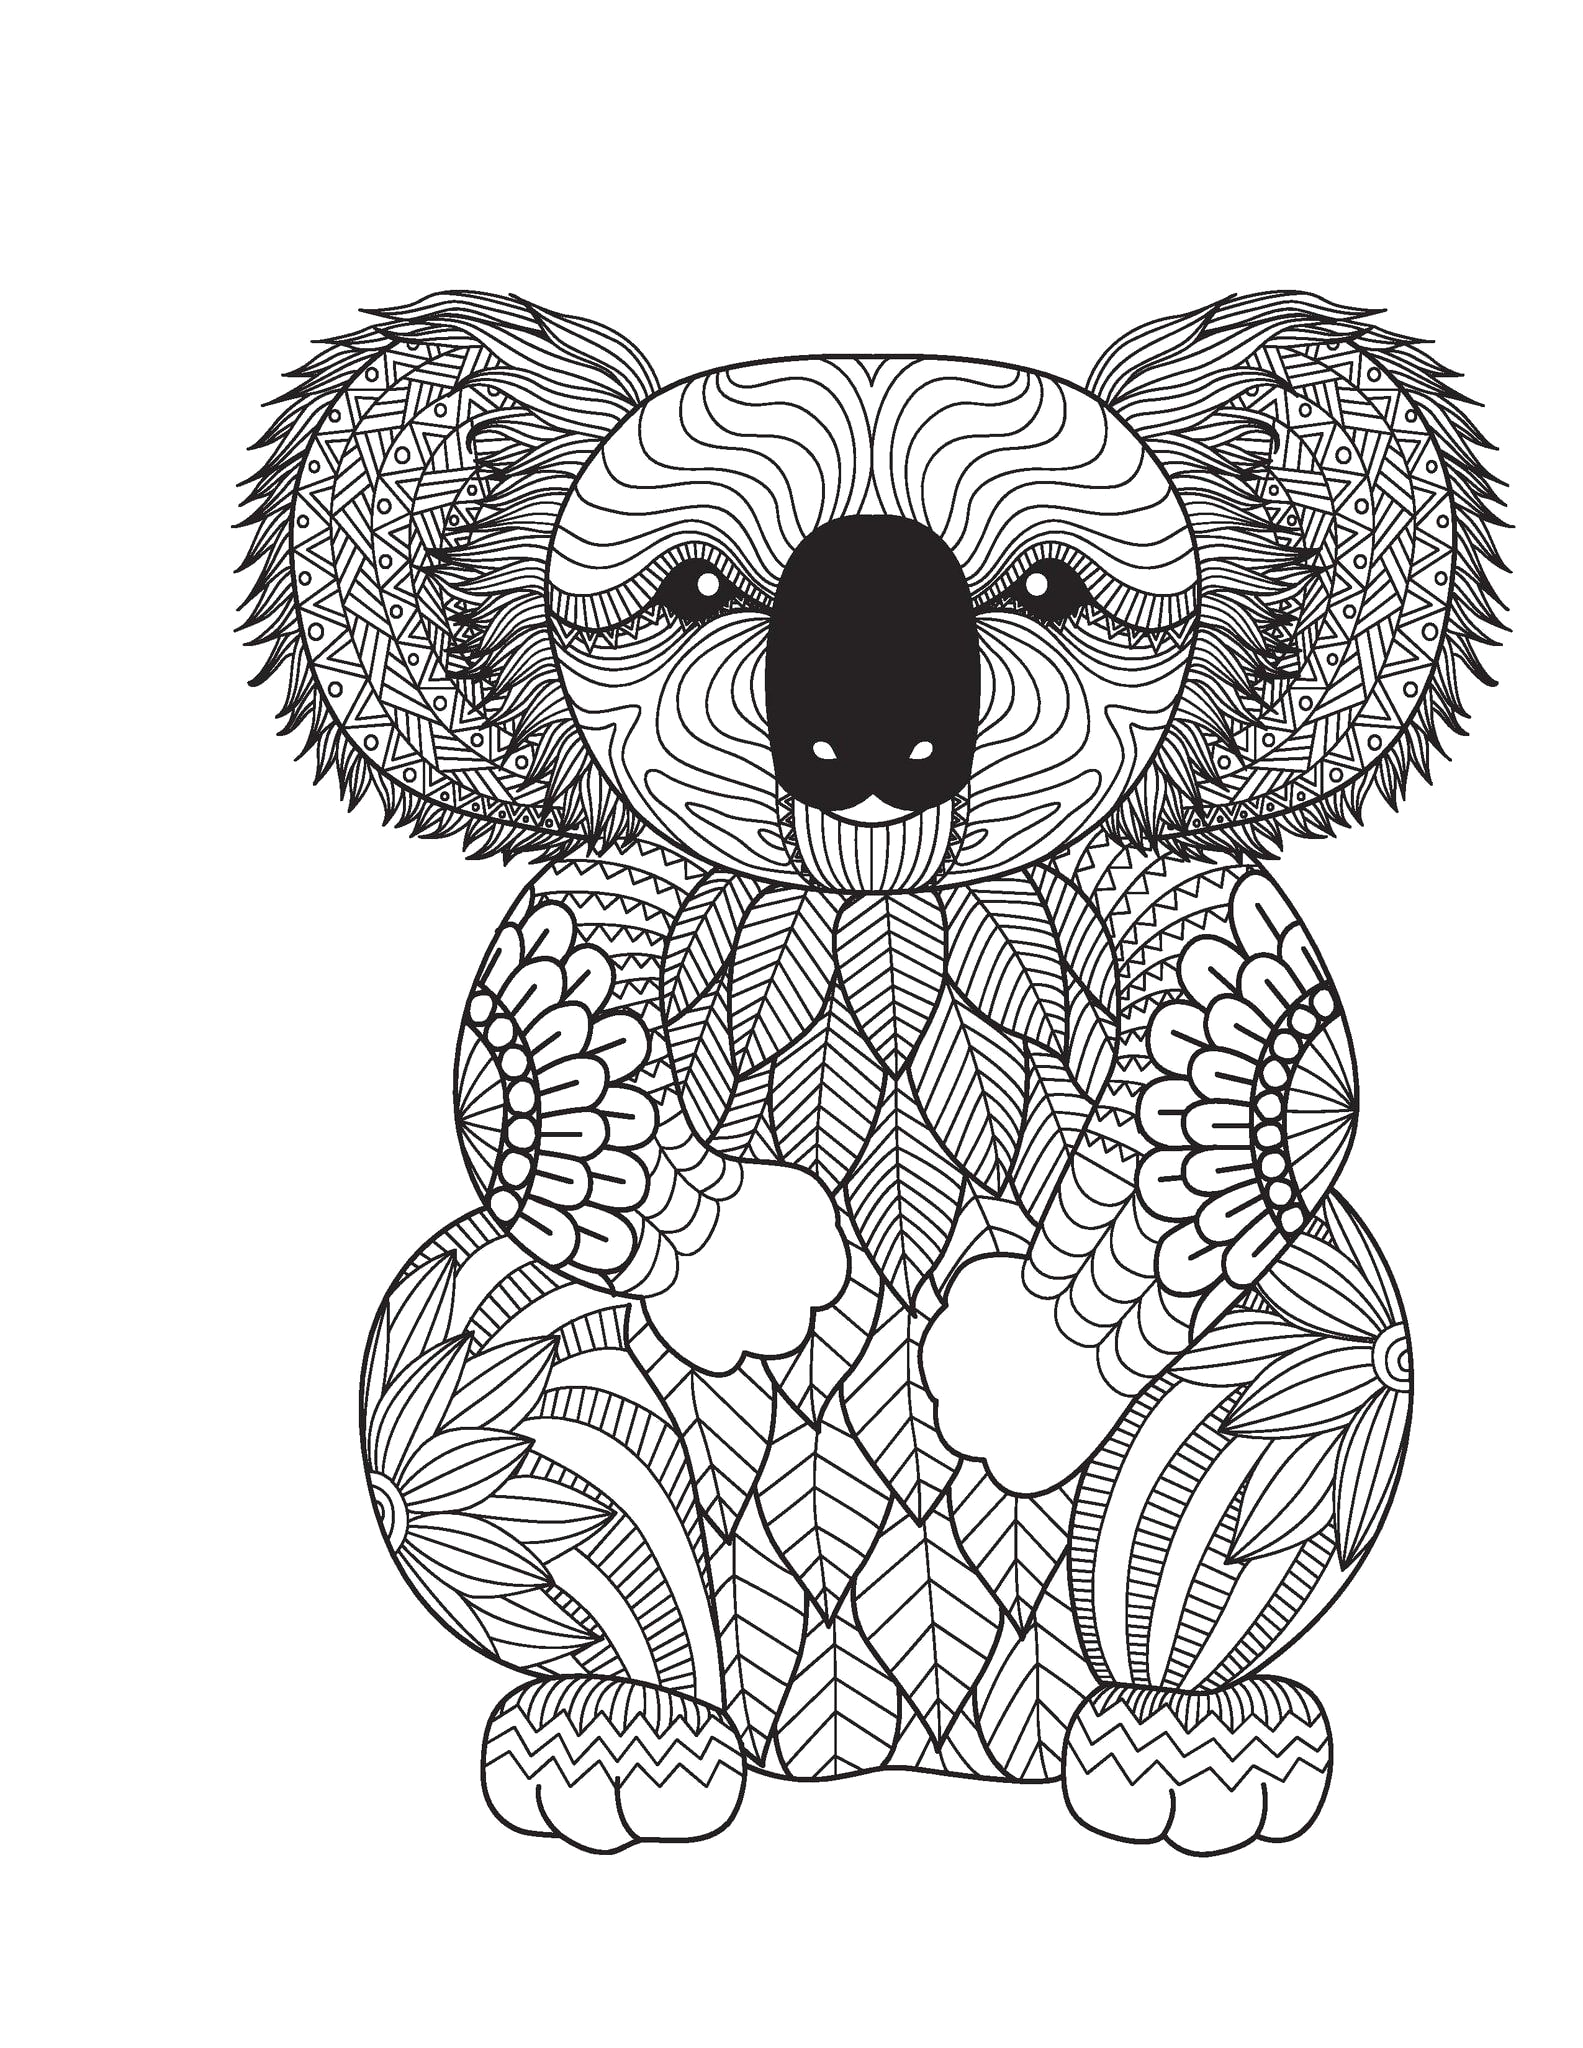 Art for Adults Over 30 Amazing Animals Coloring Pages Amazing Animals for Adults who Color Live Your Life In